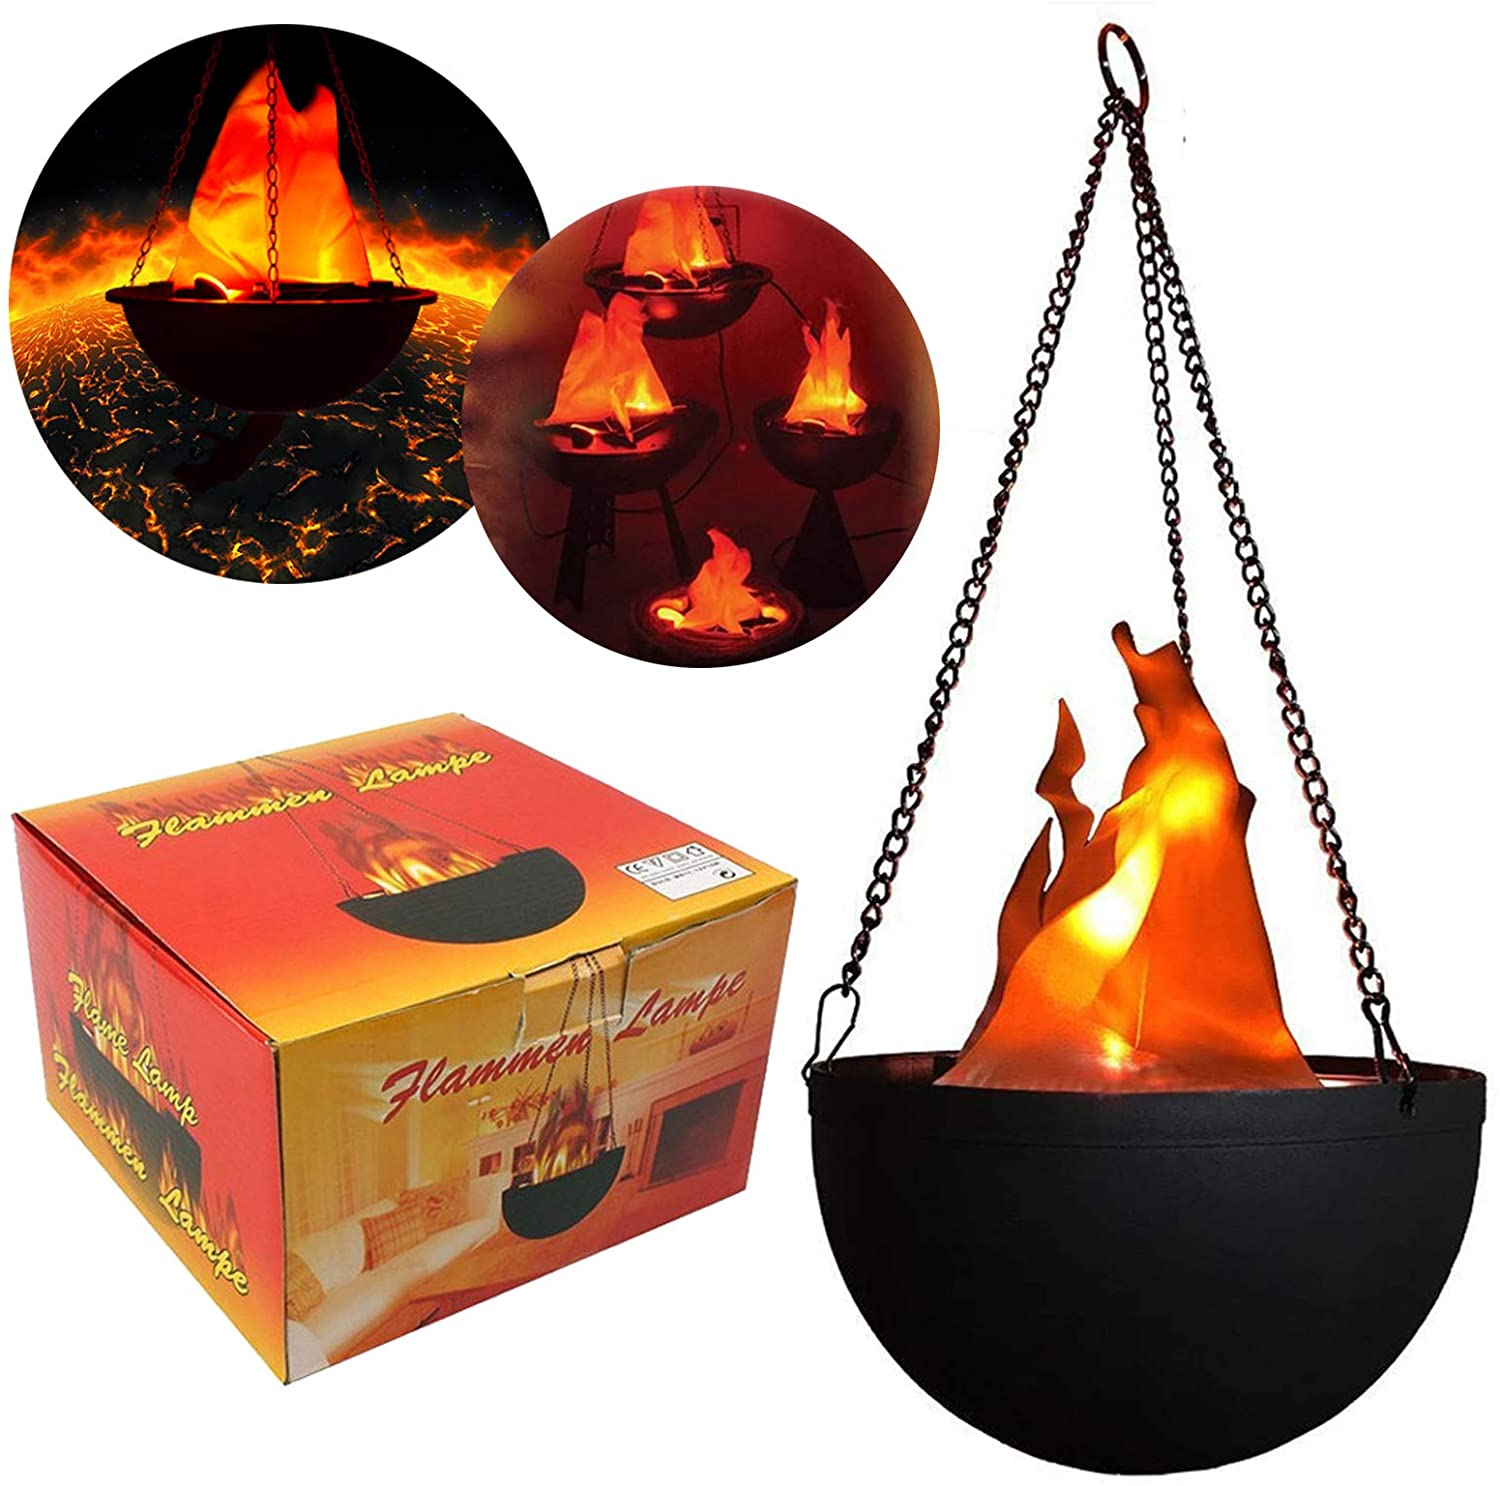 3D Fake Fire Light,Hanging LED Flame Light,Artificial LED Silk Flame Stage Effect Light Realistic Campfire Lamp Prop Flame Light for Halloween,Christmas,Festival,New Year, Party,Night Club Decor